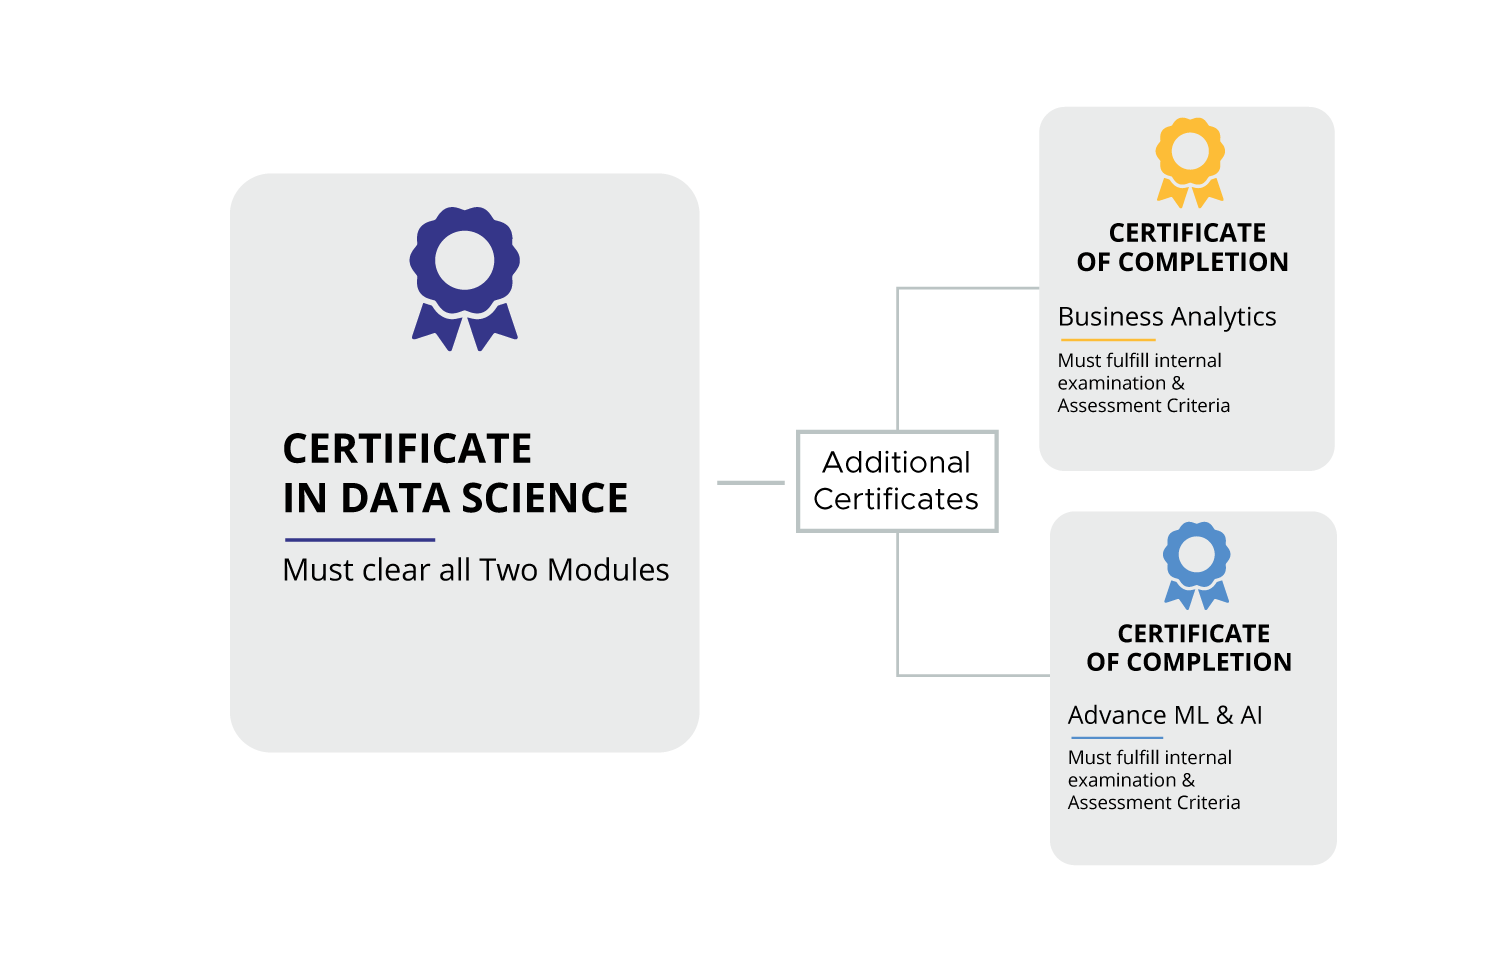 Certification process of Certificate in data science